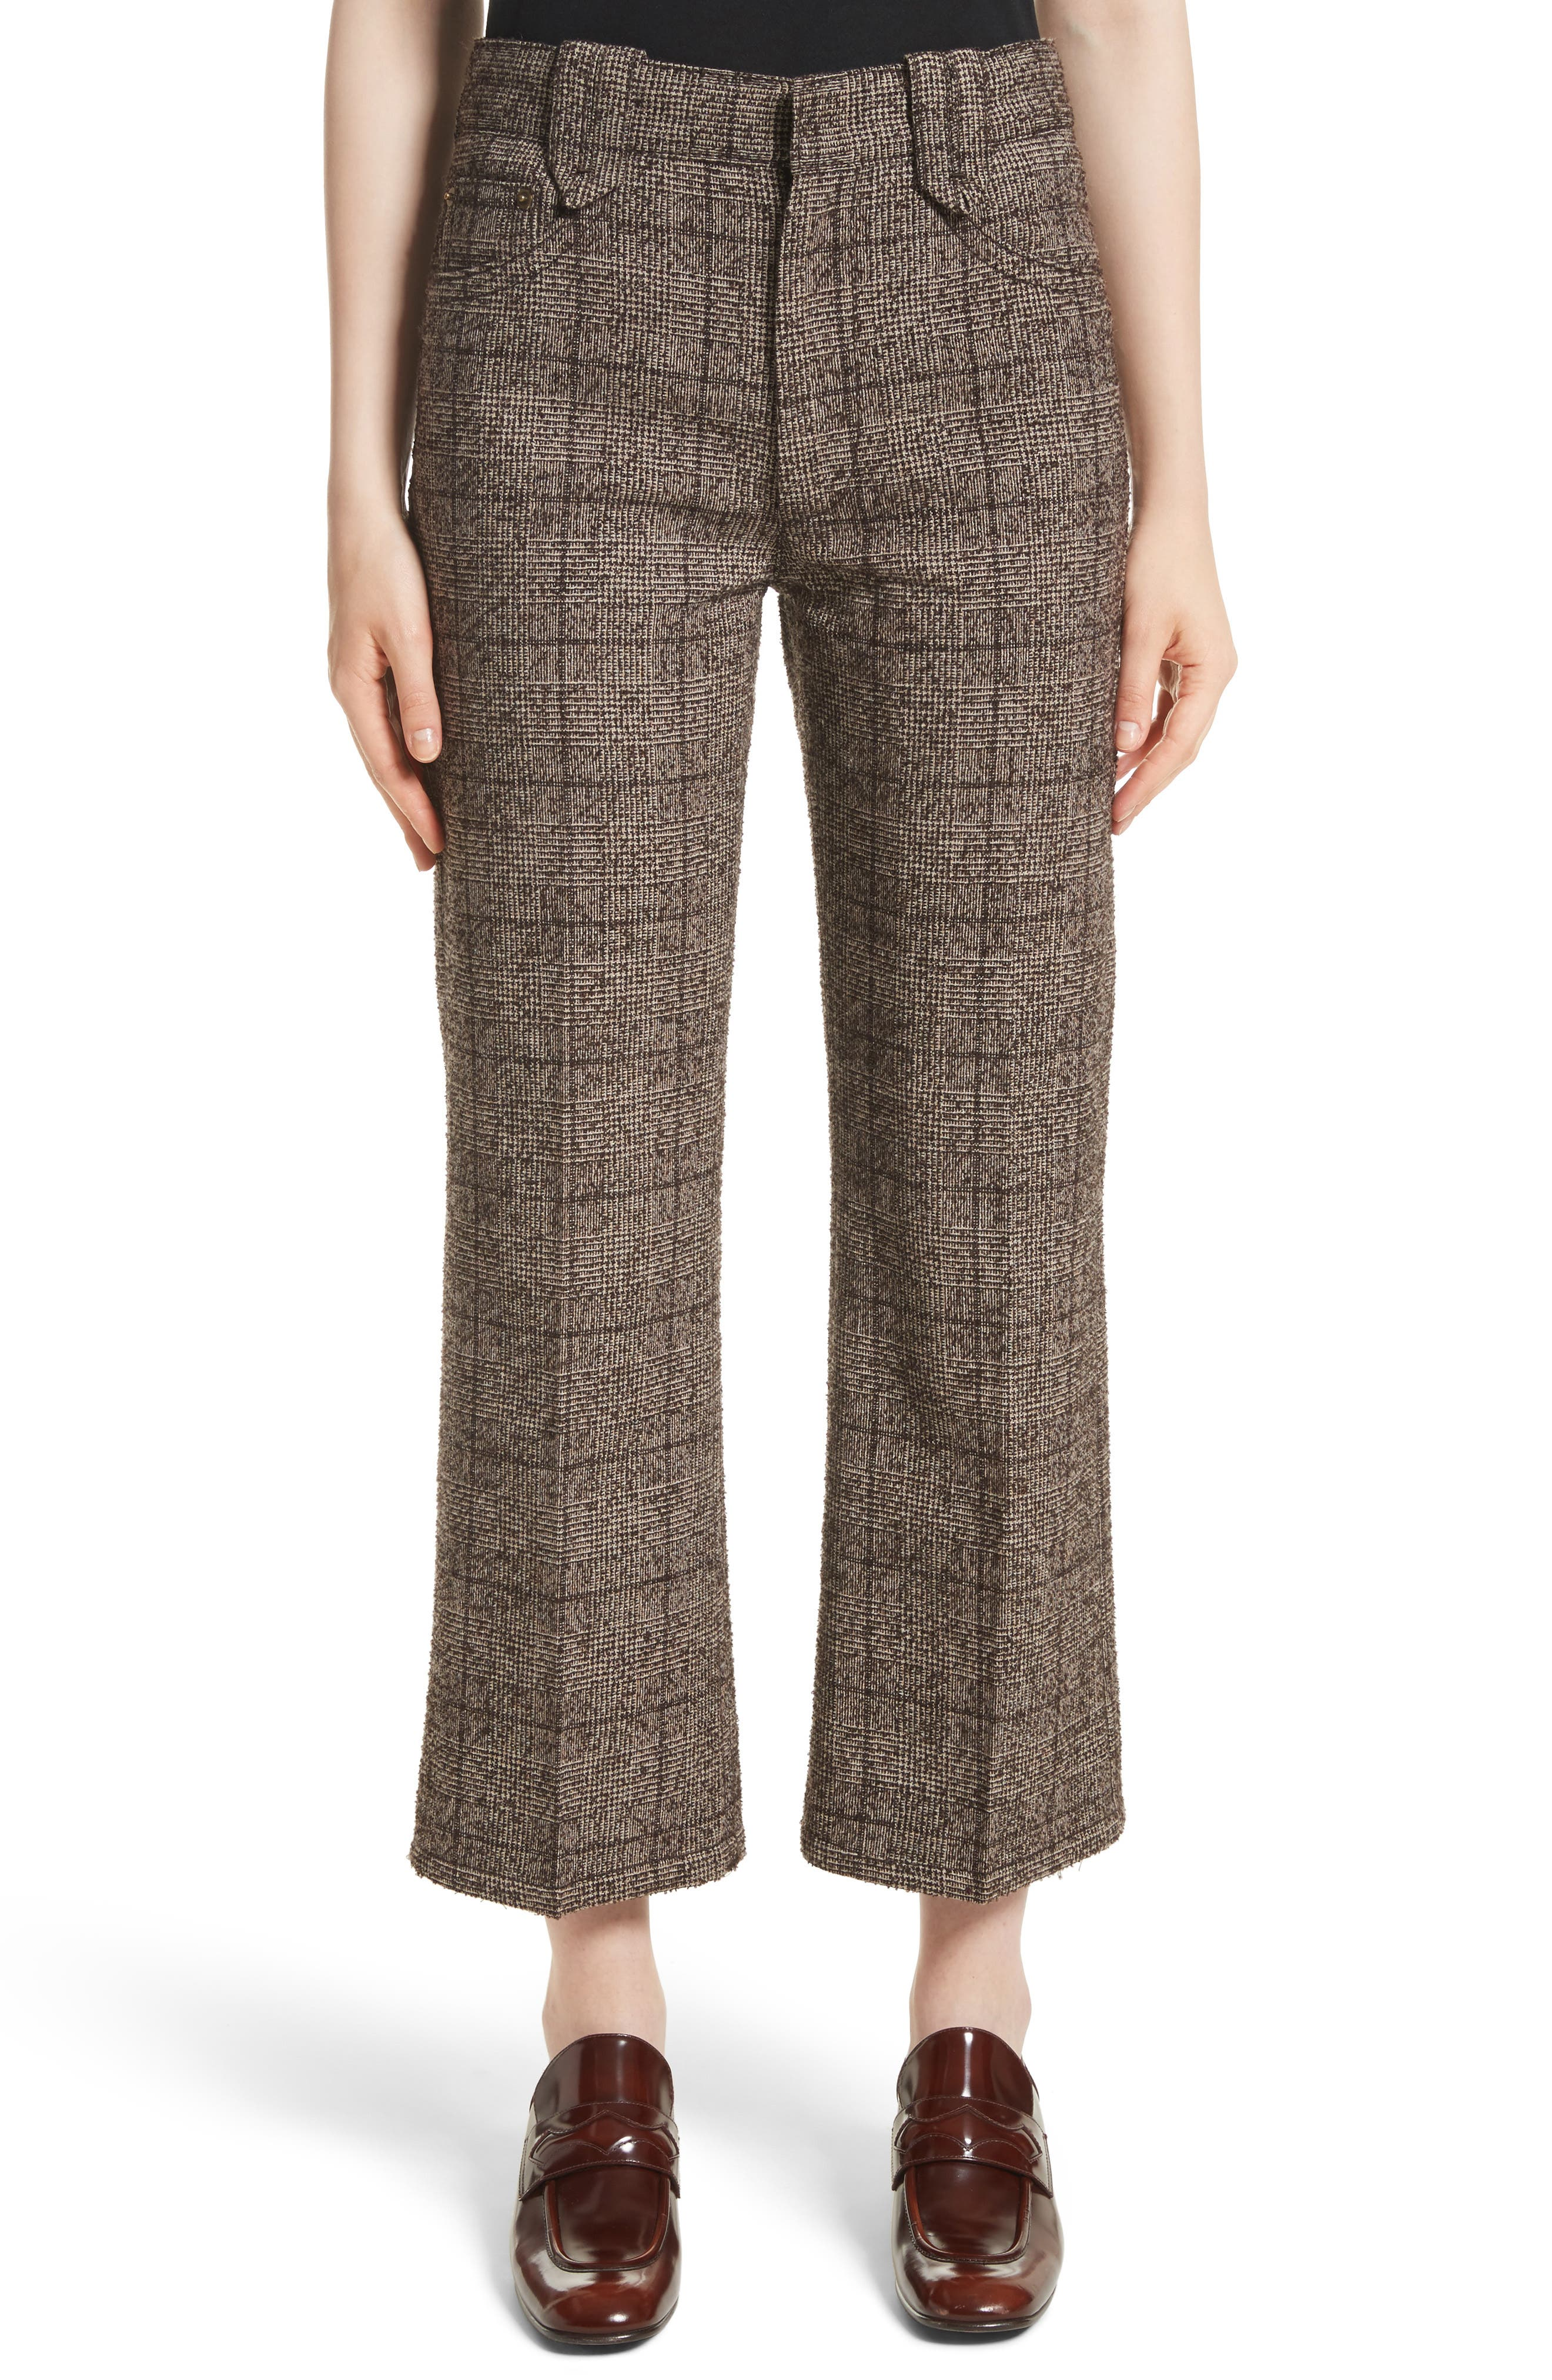 MARC JACOBS Plaid Tweed Crop Pants